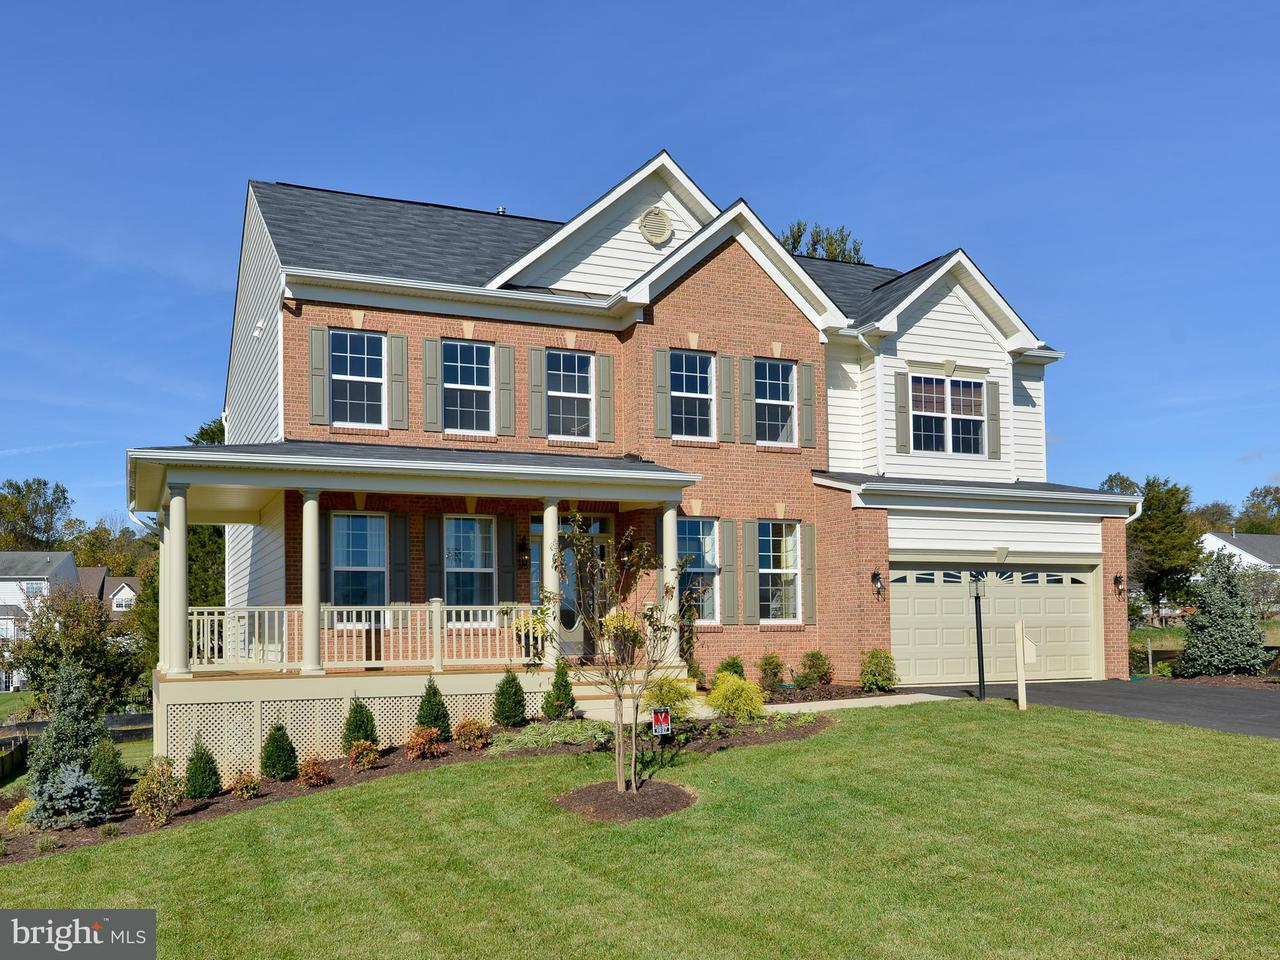 Single Family Home for Sale at 12443 Annagreen Court 12443 Annagreen Court Manassas, Virginia 20112 United States